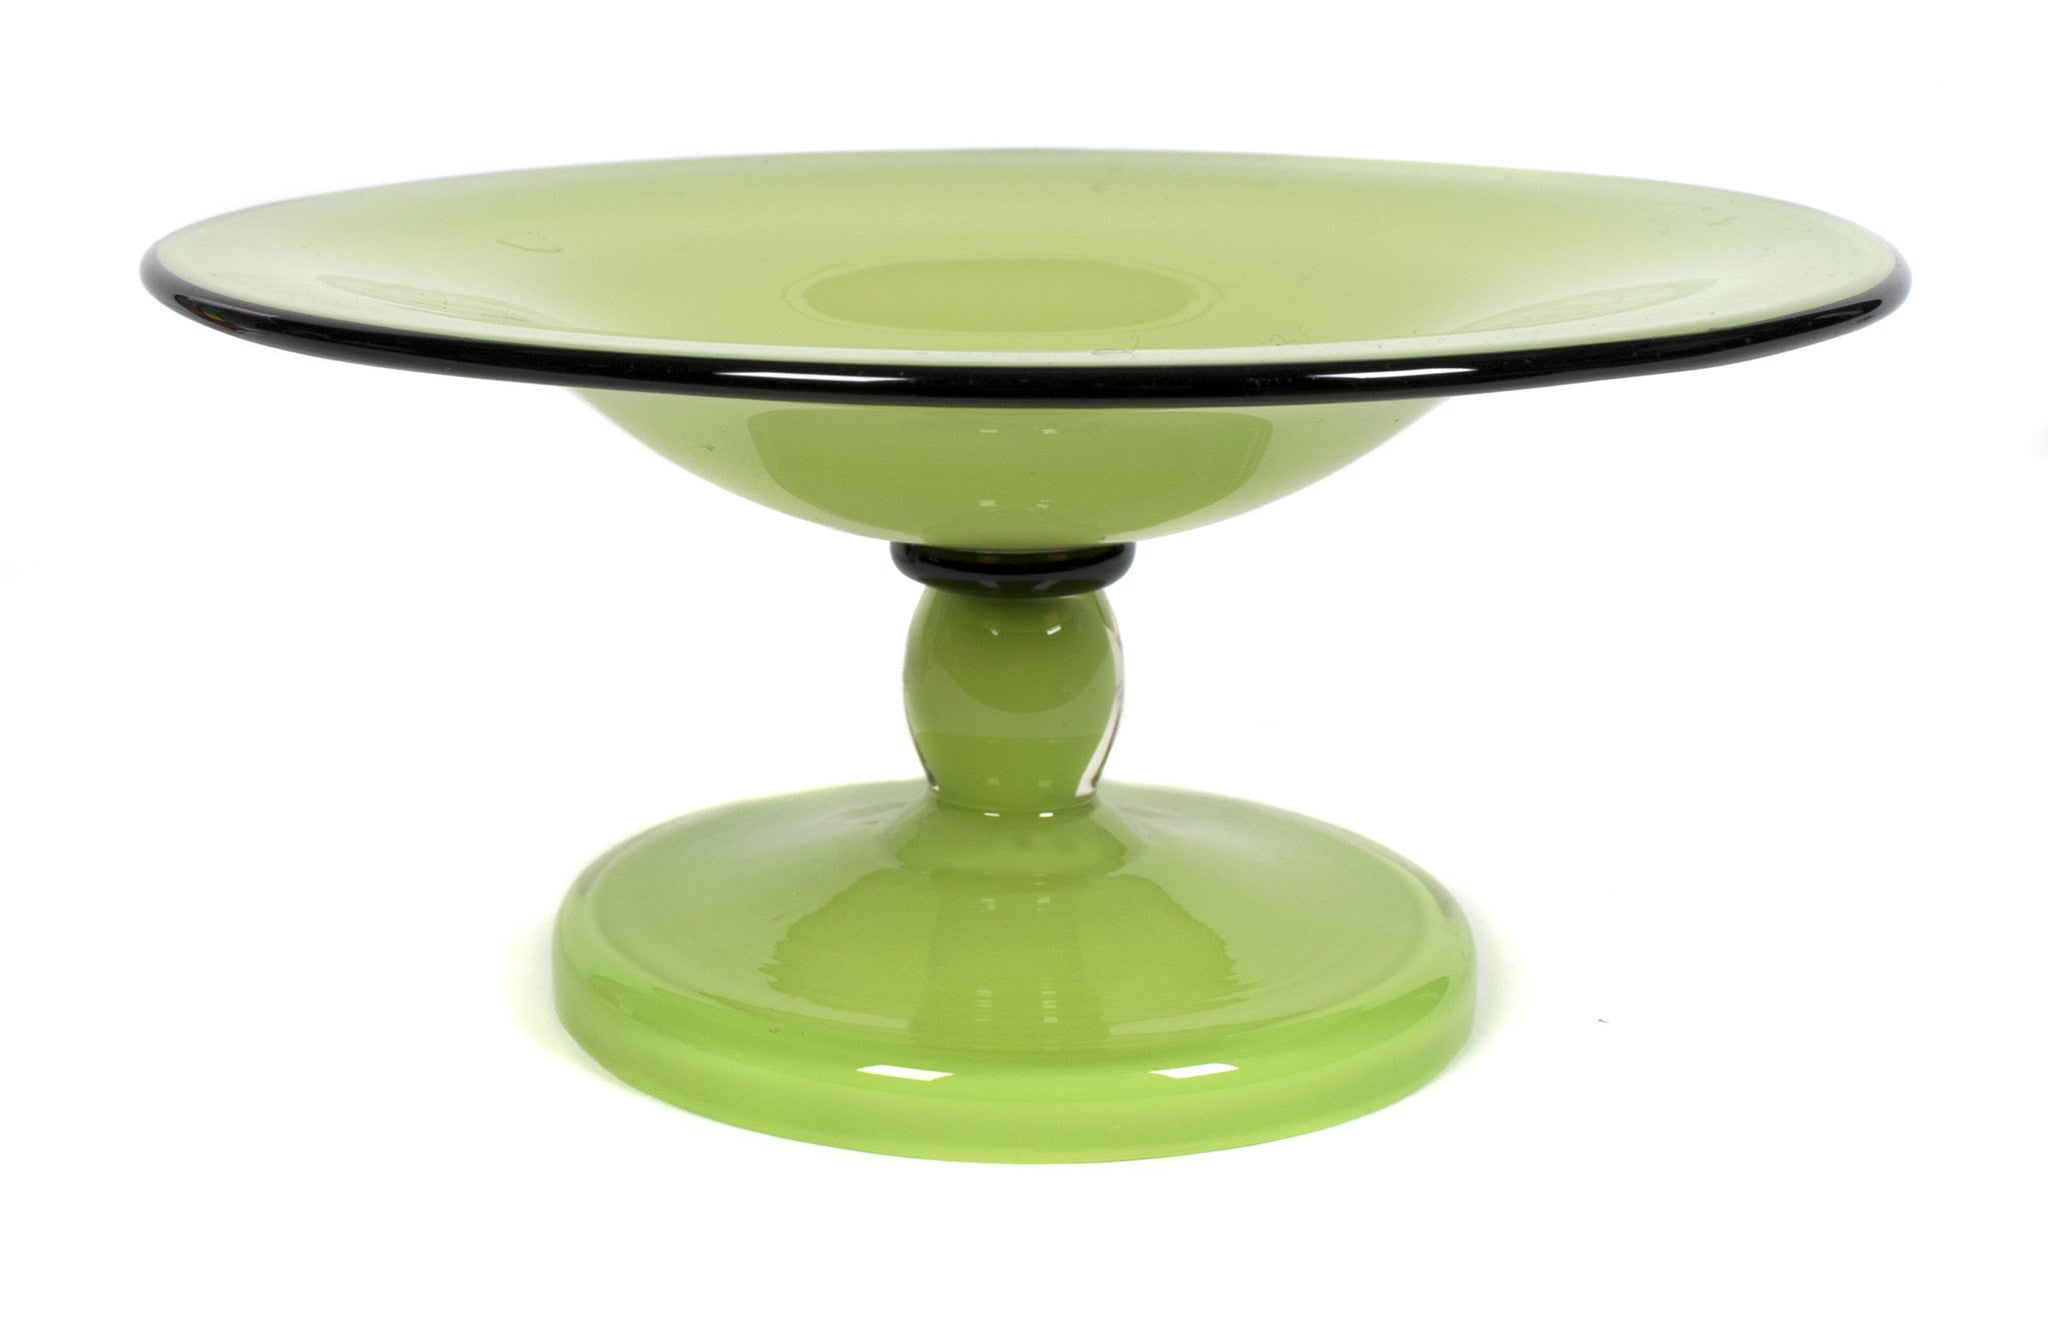 fruit pedestal crystal shop home bowl tear glassware scalloped kitchen glass nut collectibles vtg candy drops clear edge